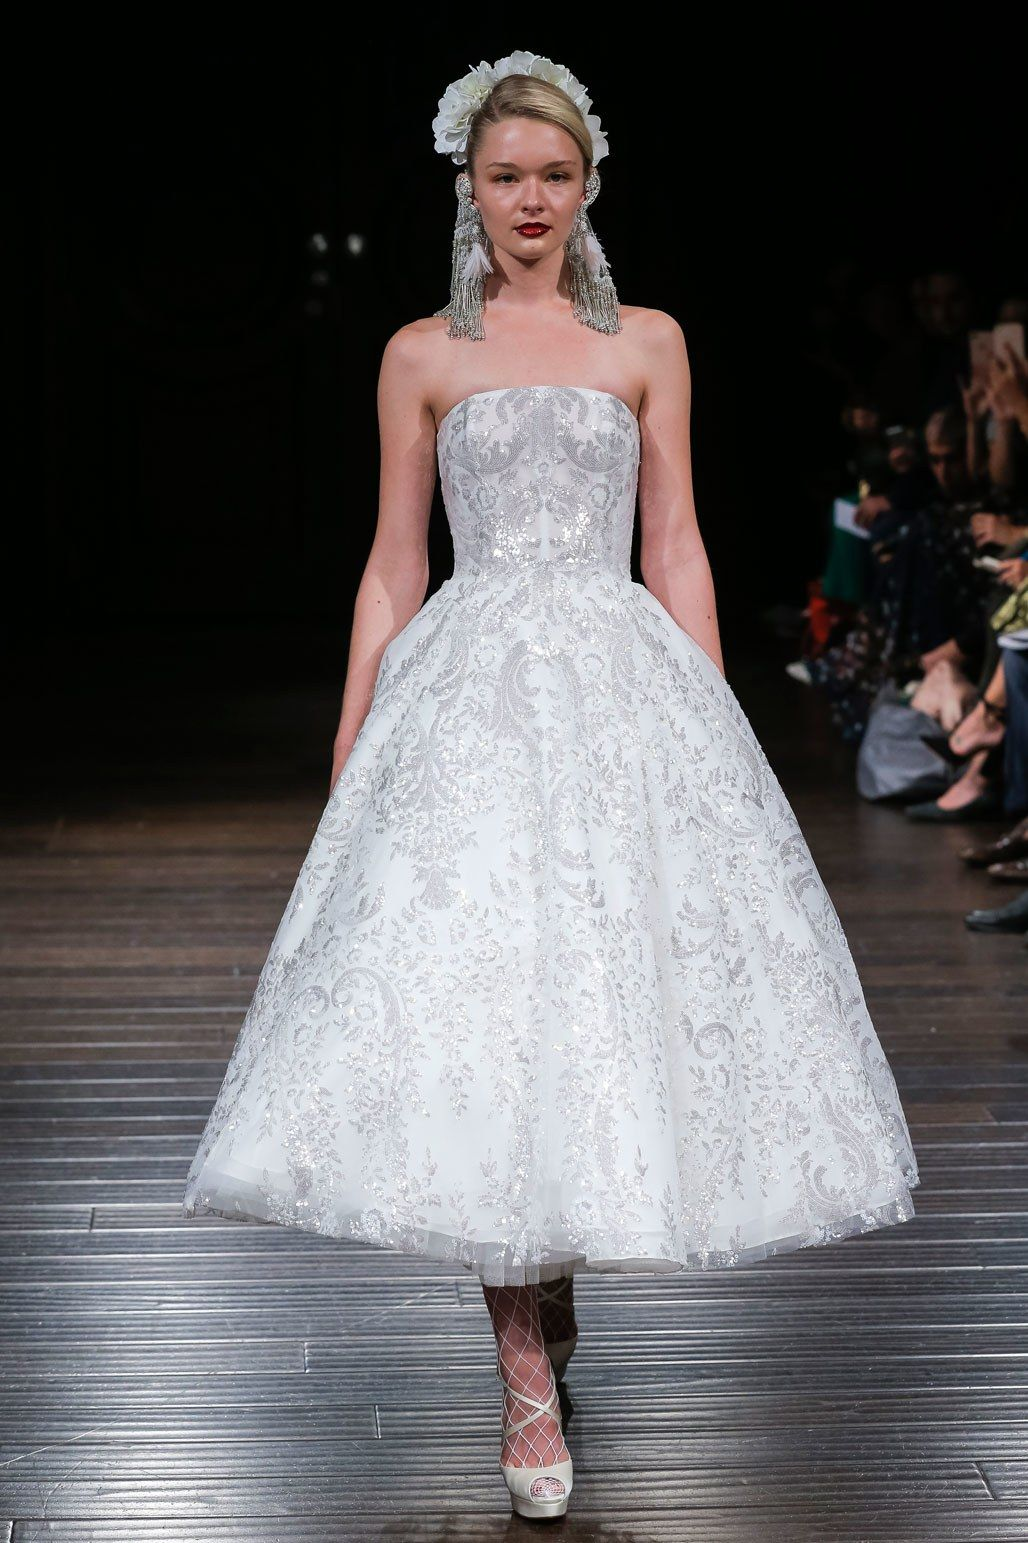 Naeem Khan Bridal Fall 2018 Collection Photos - Vogue#passionforfashionfabrics #purveyorsoffinefabrics #cometousforfashion #rexfabrics